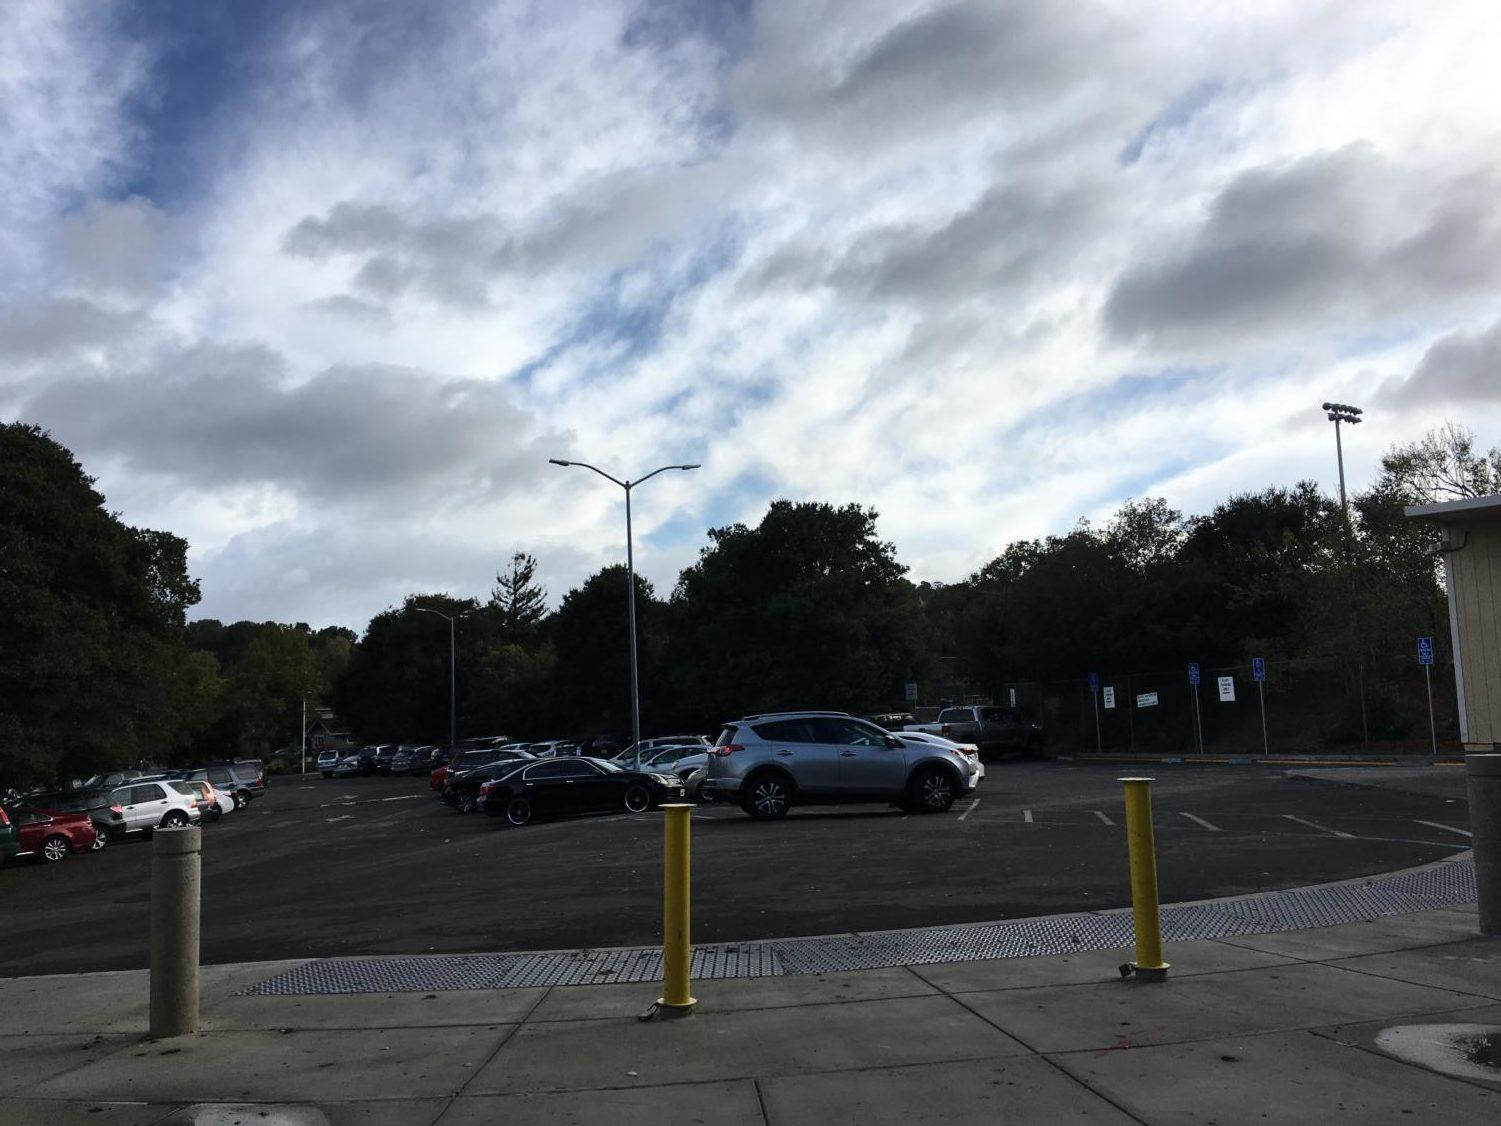 Carlmont's parking lot has spots available for $100 apiece. After school especially, all the cars flooding out of these parking lots slows traffic and causes a rush of cars.